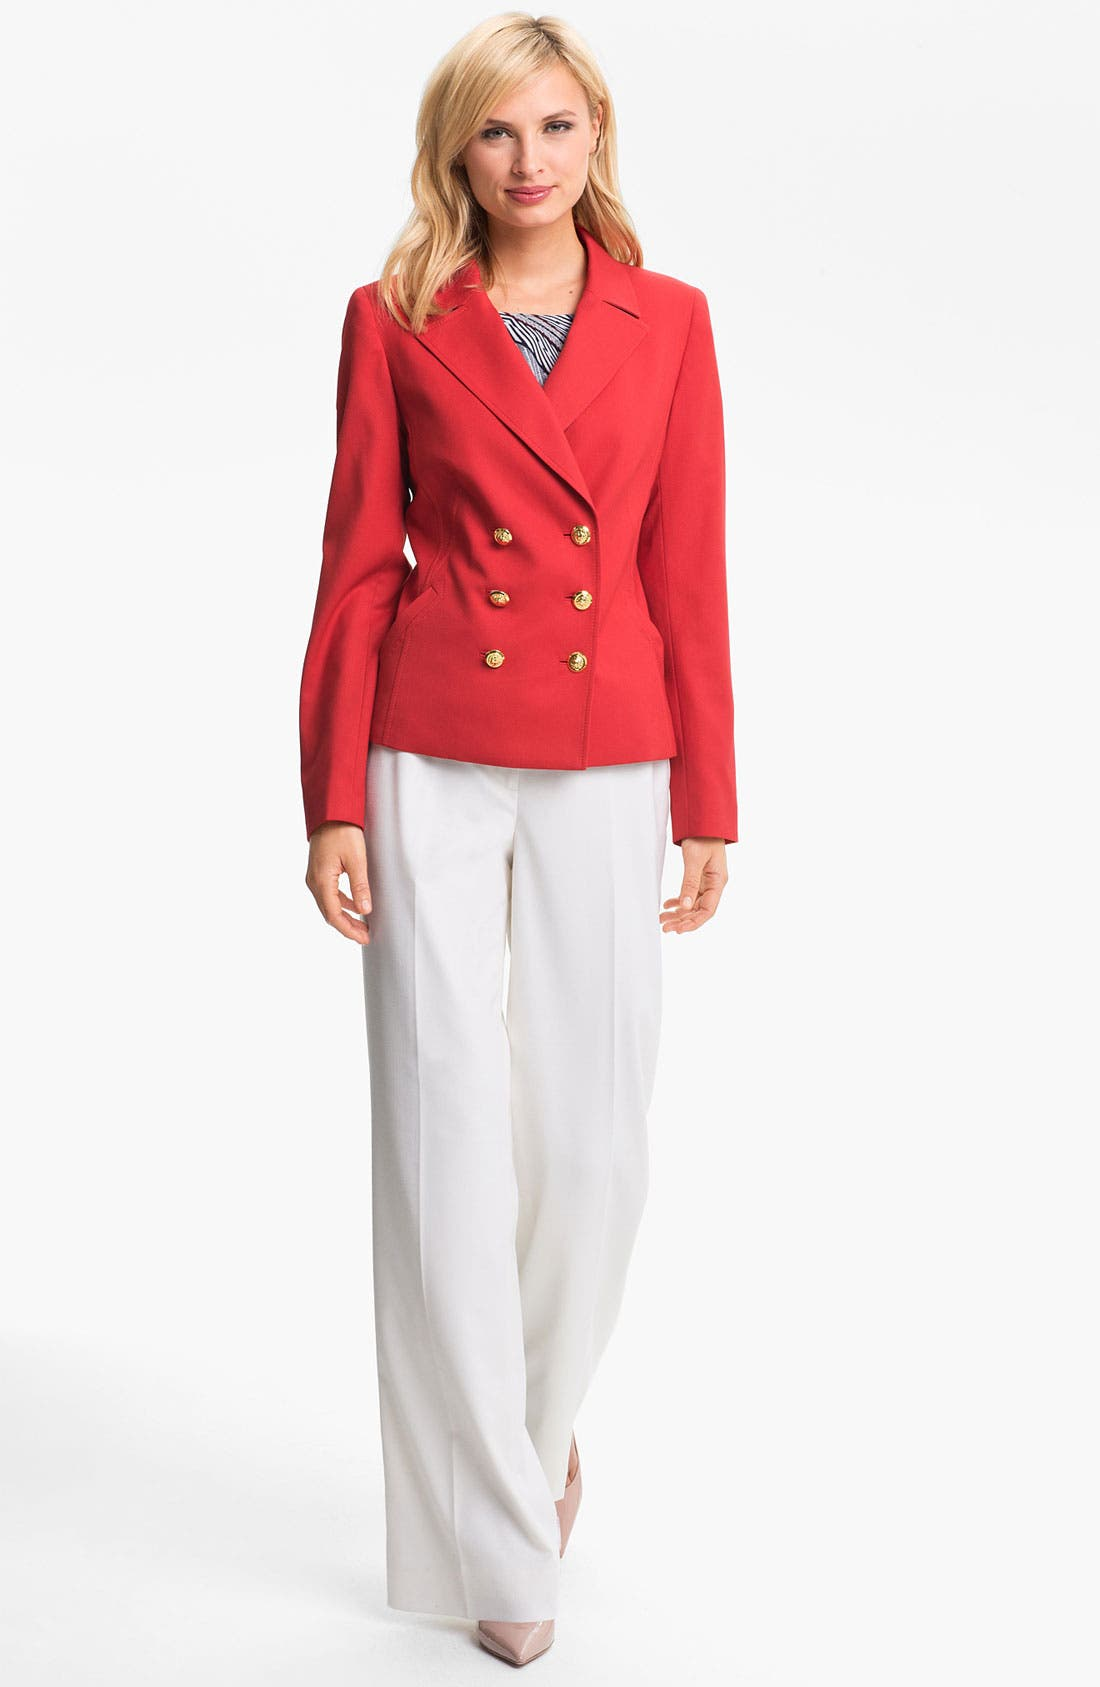 Alternate Image 1 Selected - Anne Klein Peacoat (Petite)